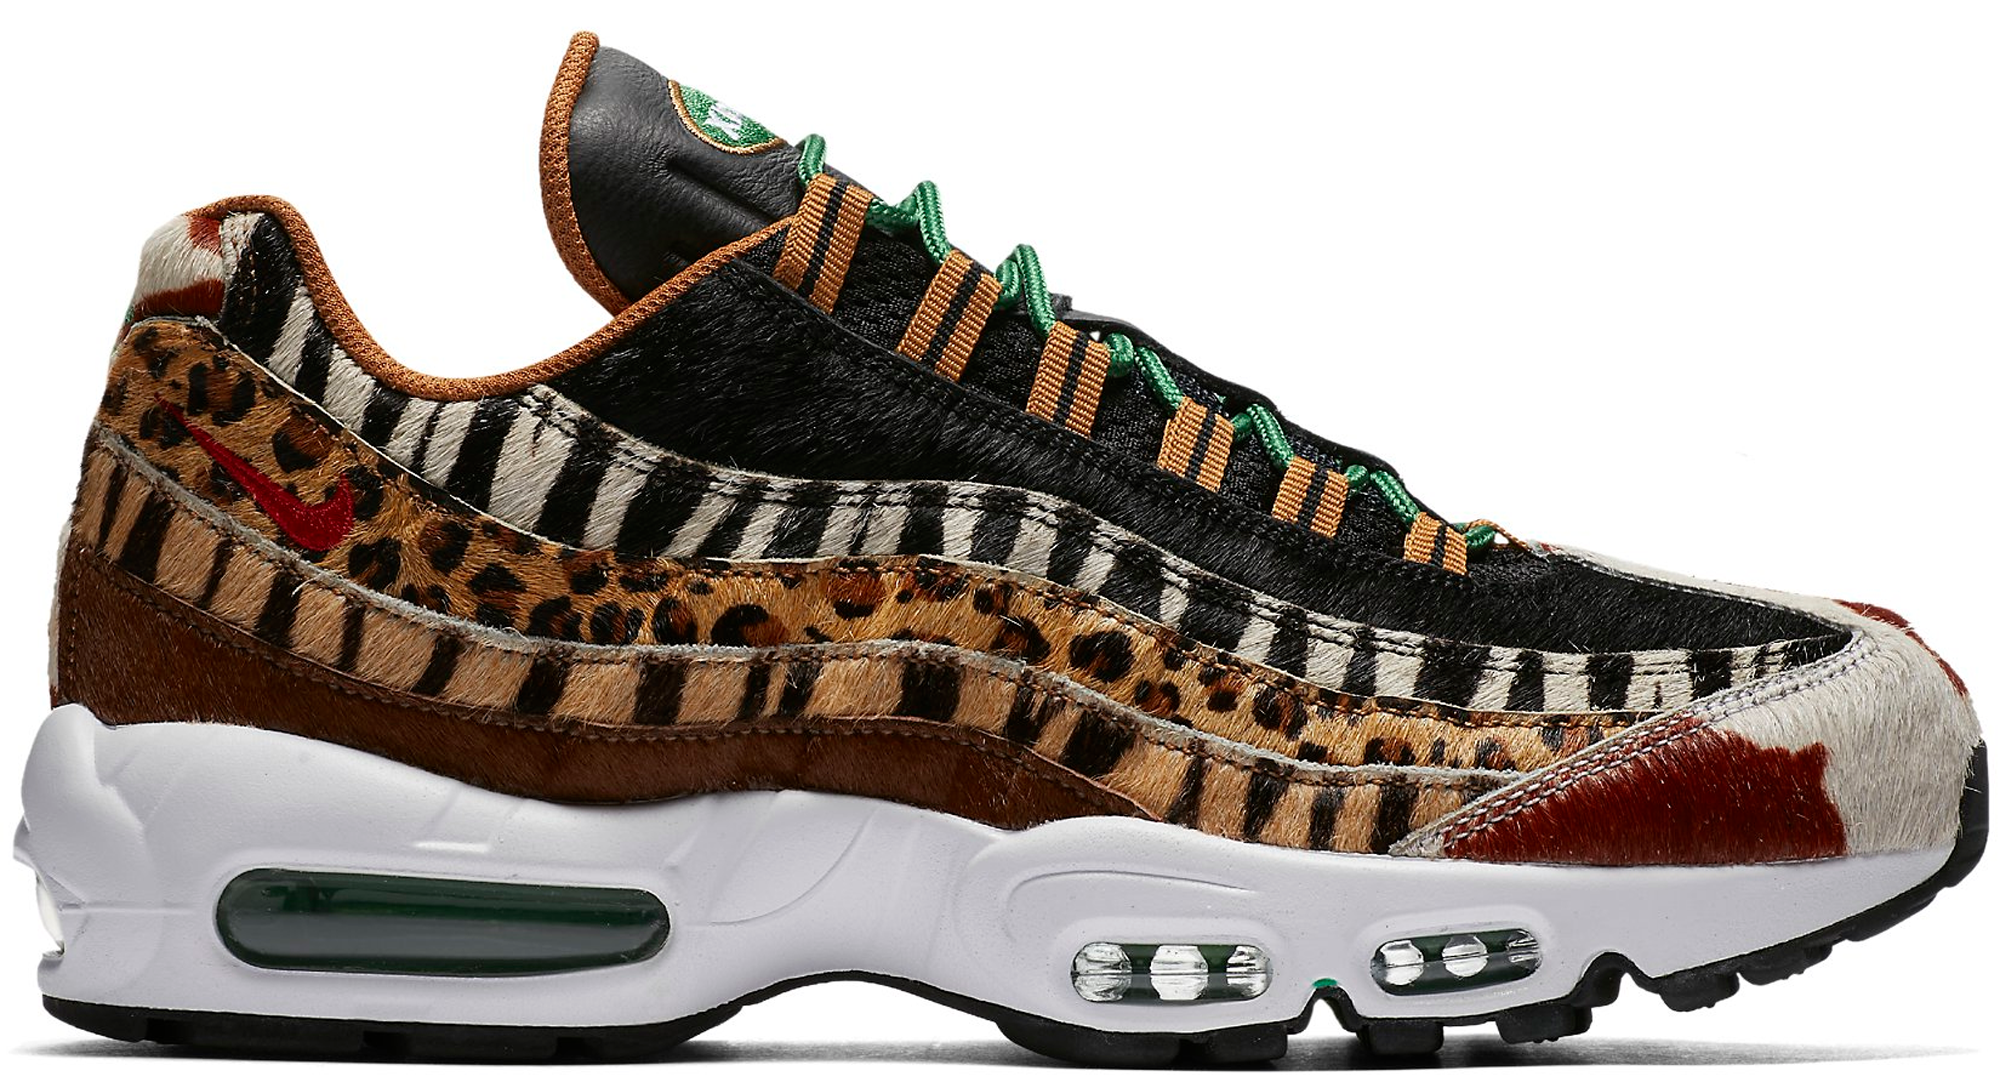 6ef65682b39 ... coupon code for hypeanalyzer air max 95 atmos animal pack 2.0 2018  animal print box e6521